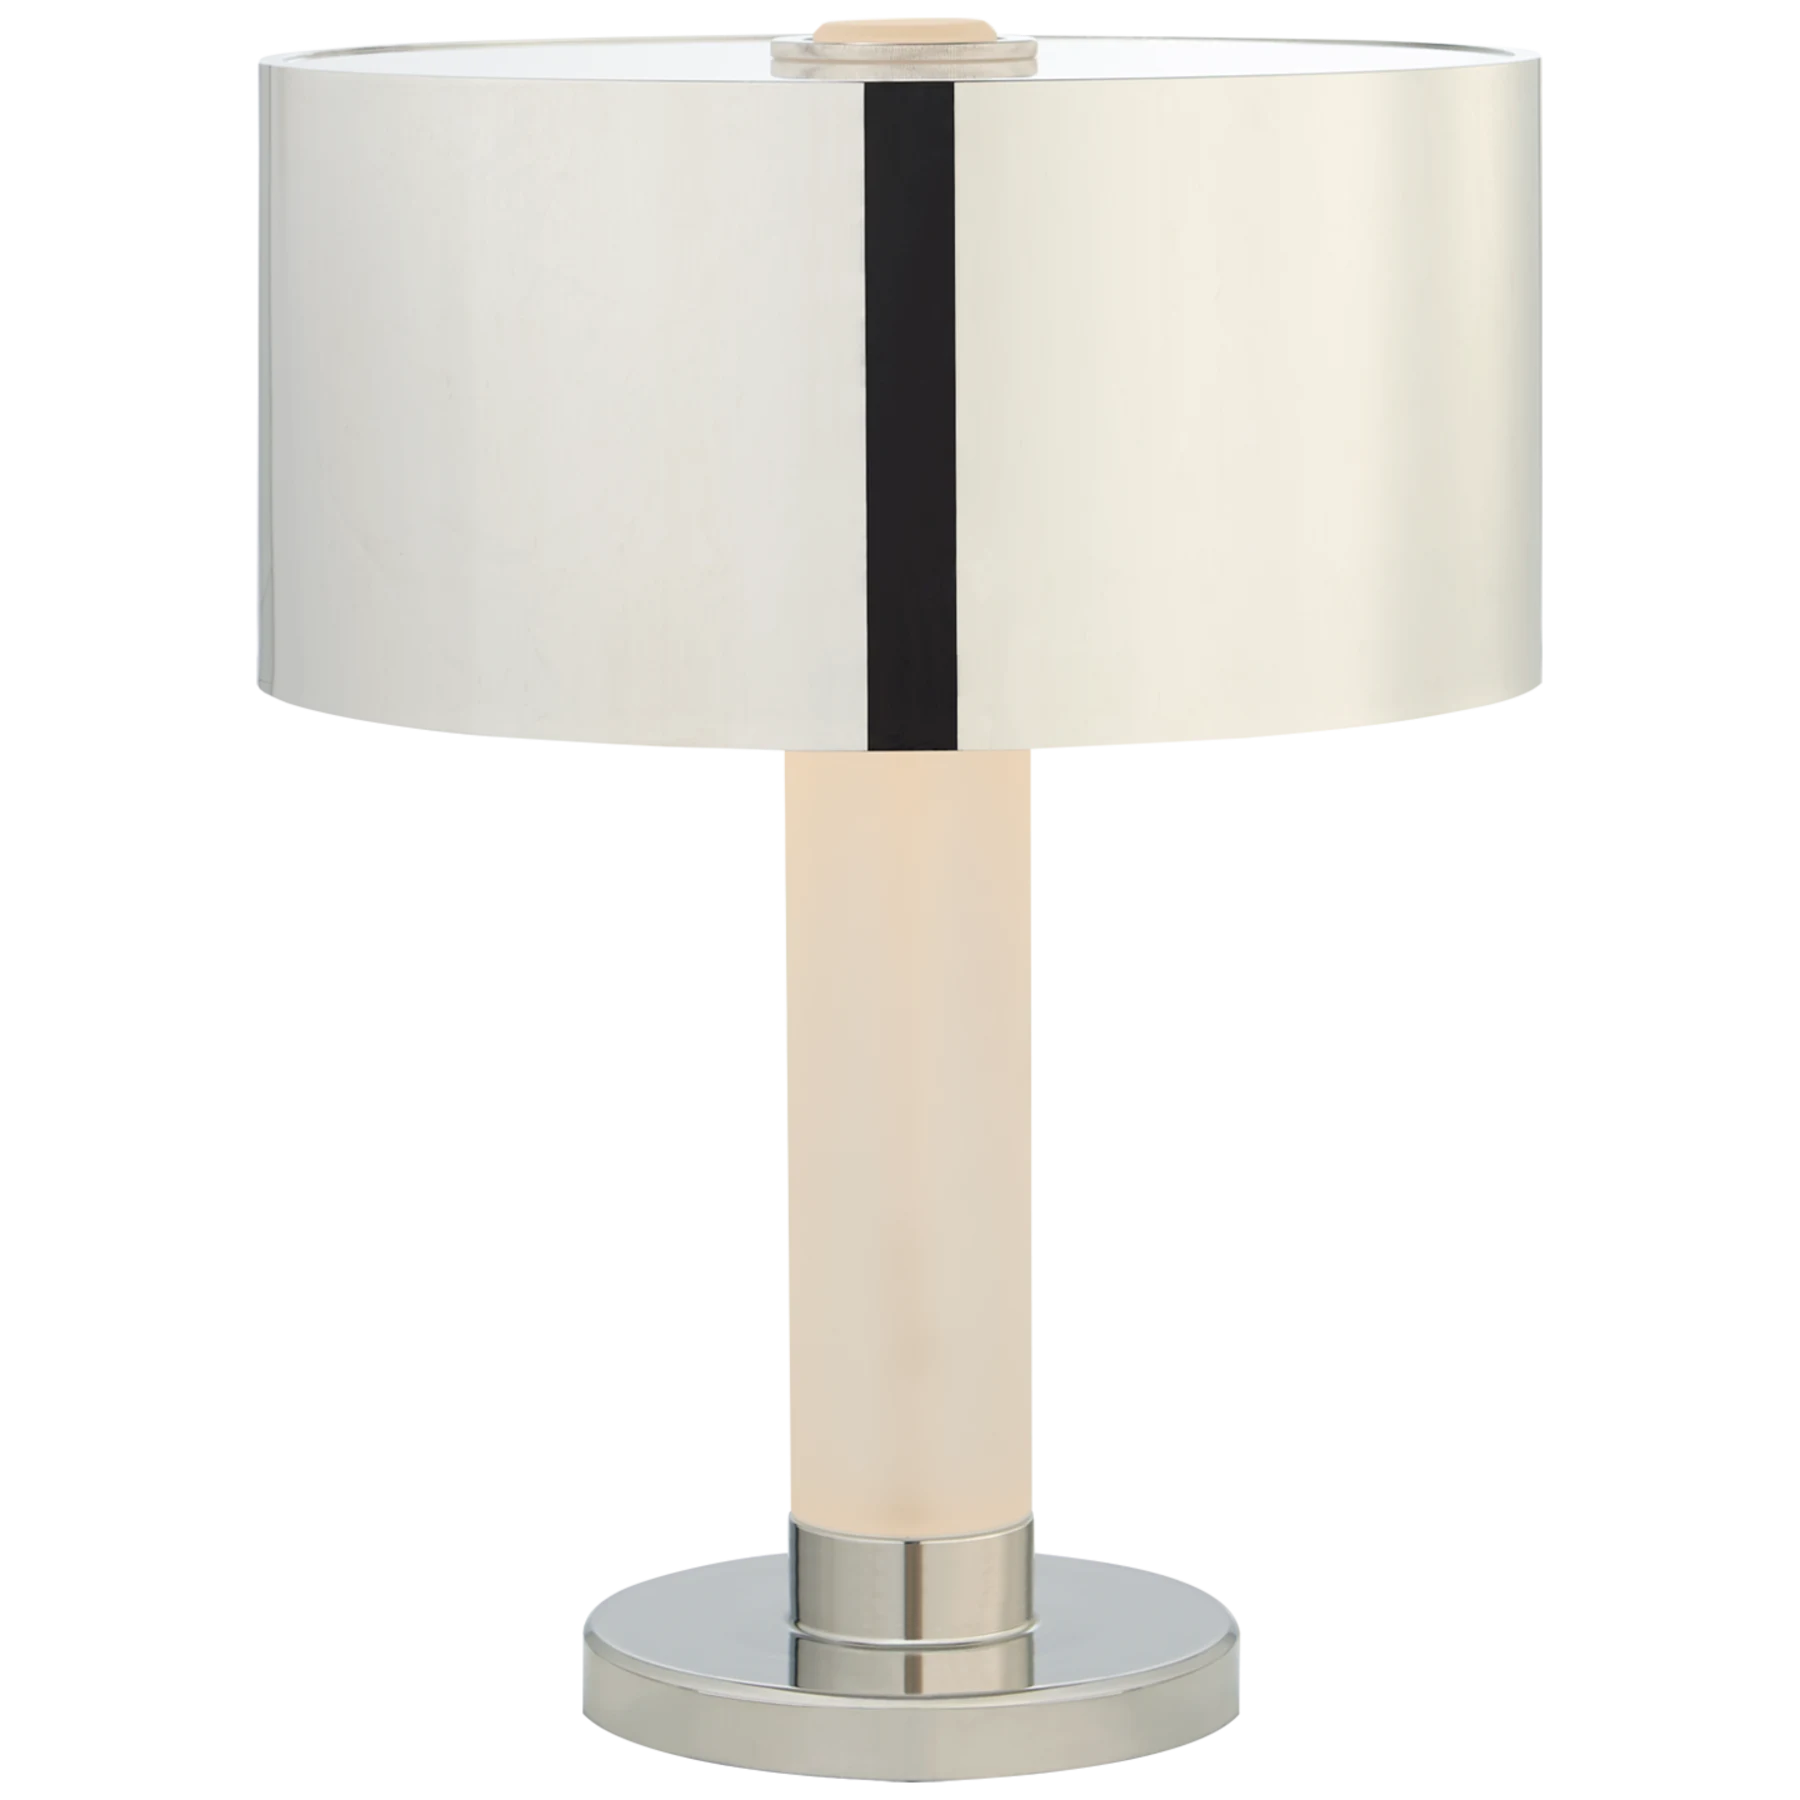 Barton Desk Lamp Lamp Desk Lamp Table Lamp